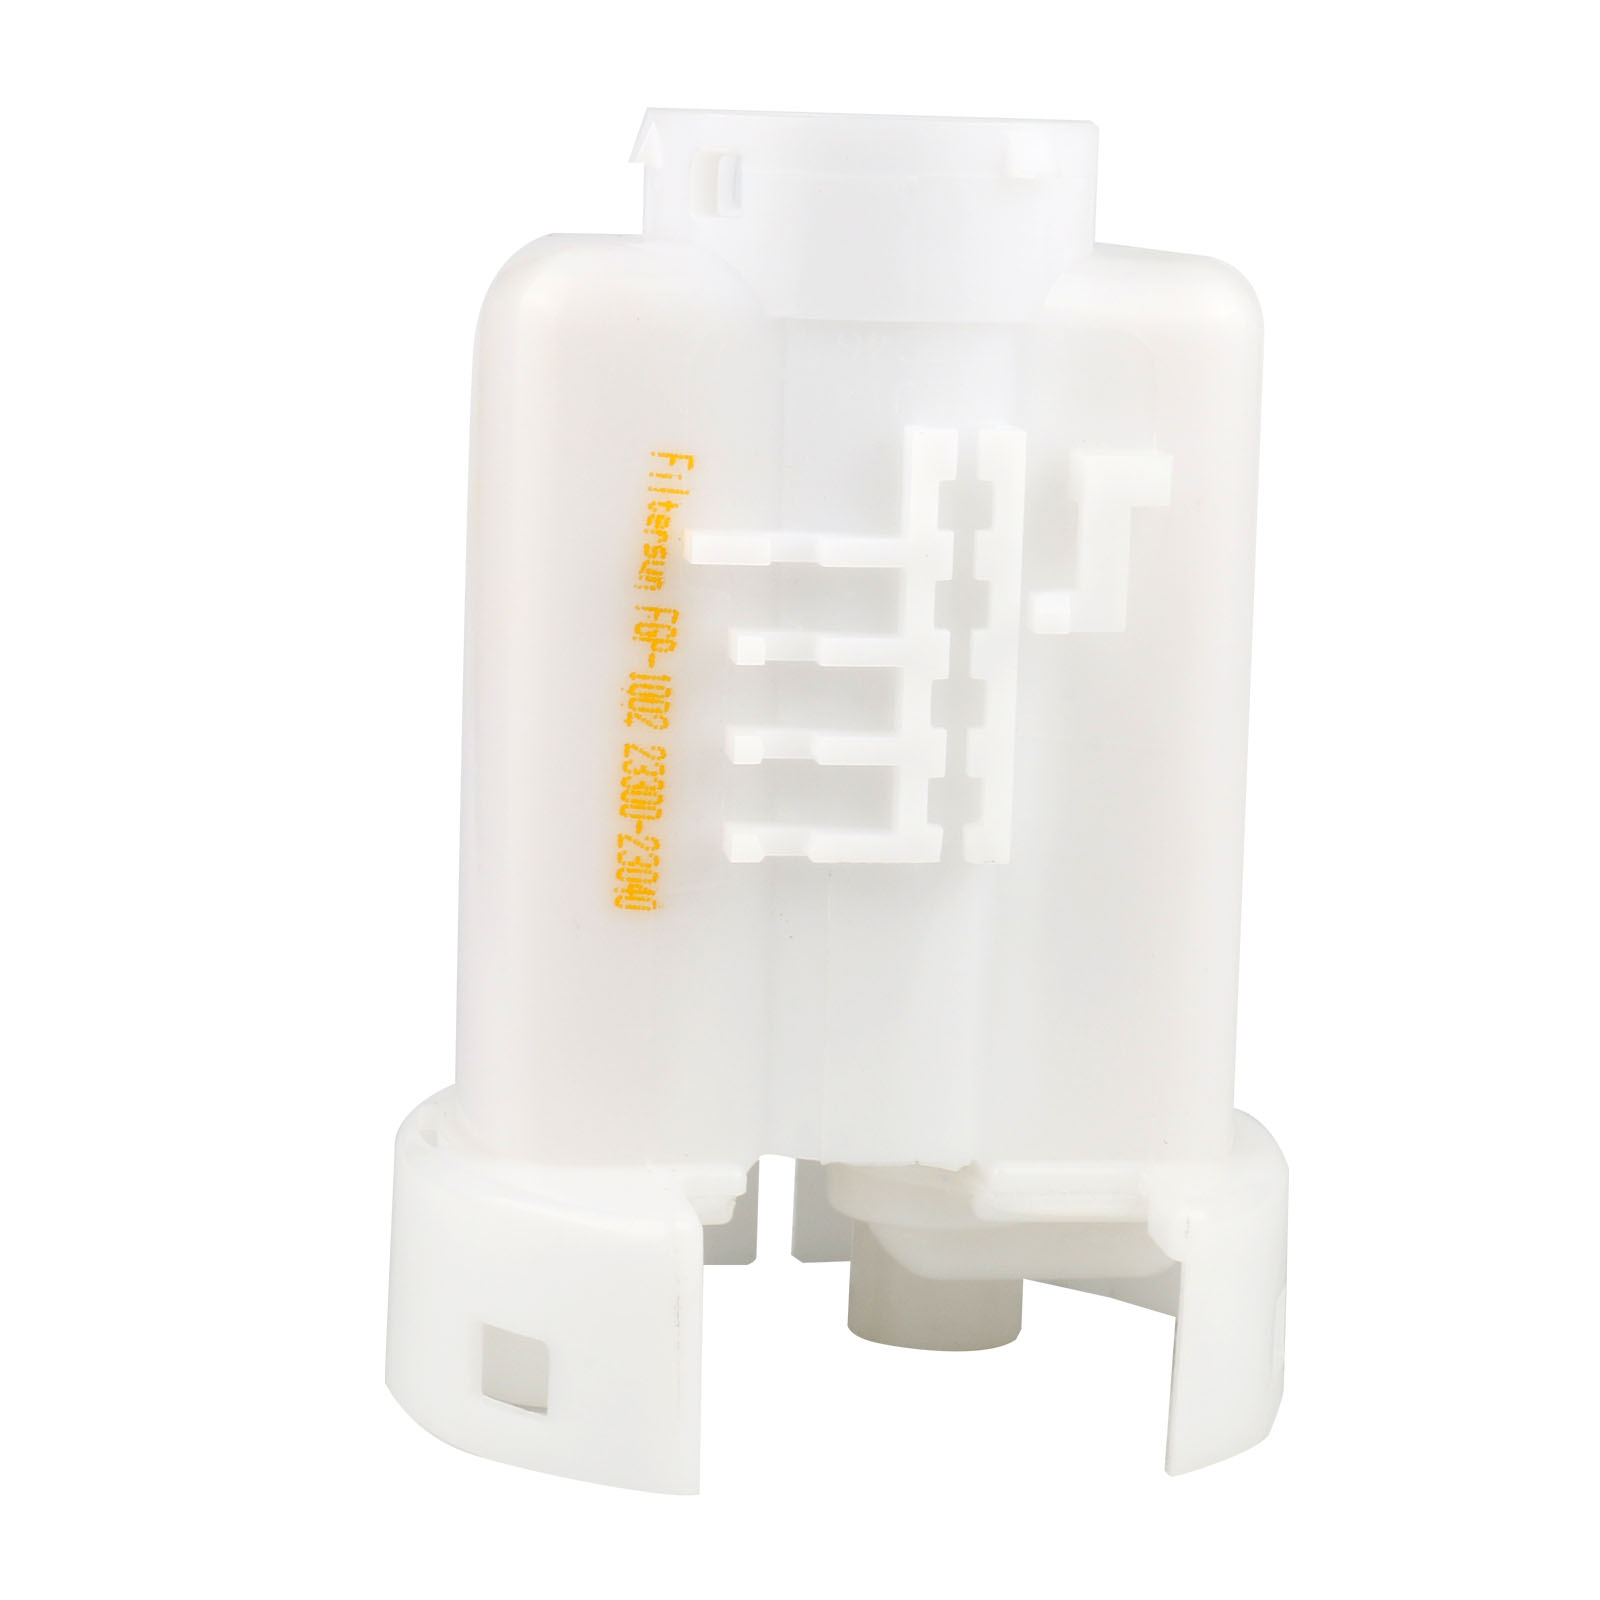 hight resolution of car gas gasoline petrol fuel filter oe 23300 23040 replacement parts for toyota daihatsu charade